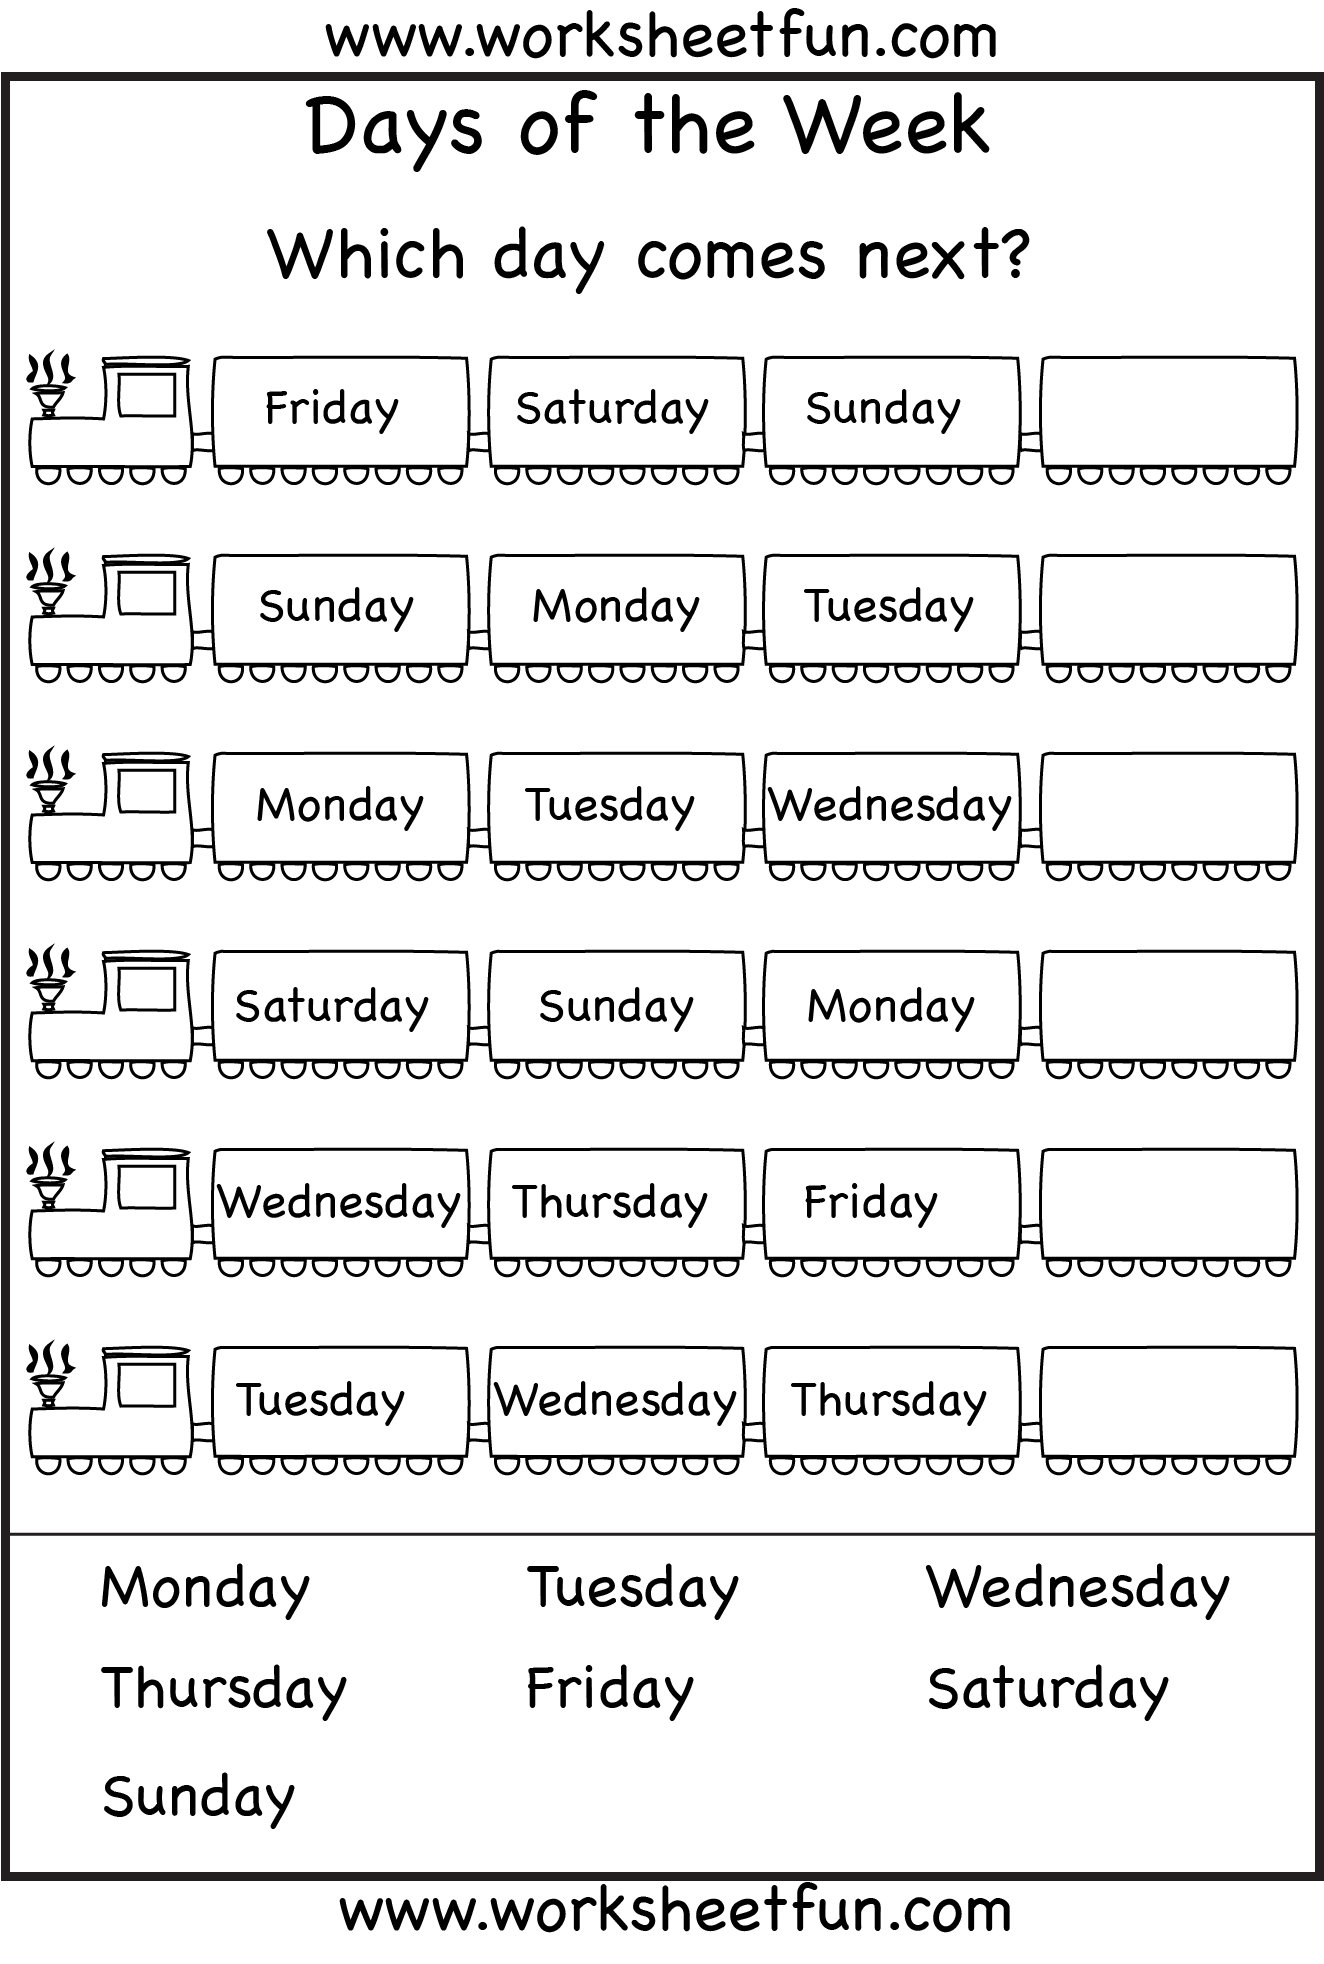 Days of the week worksheet preschool pinterest - Ideen englisch ...